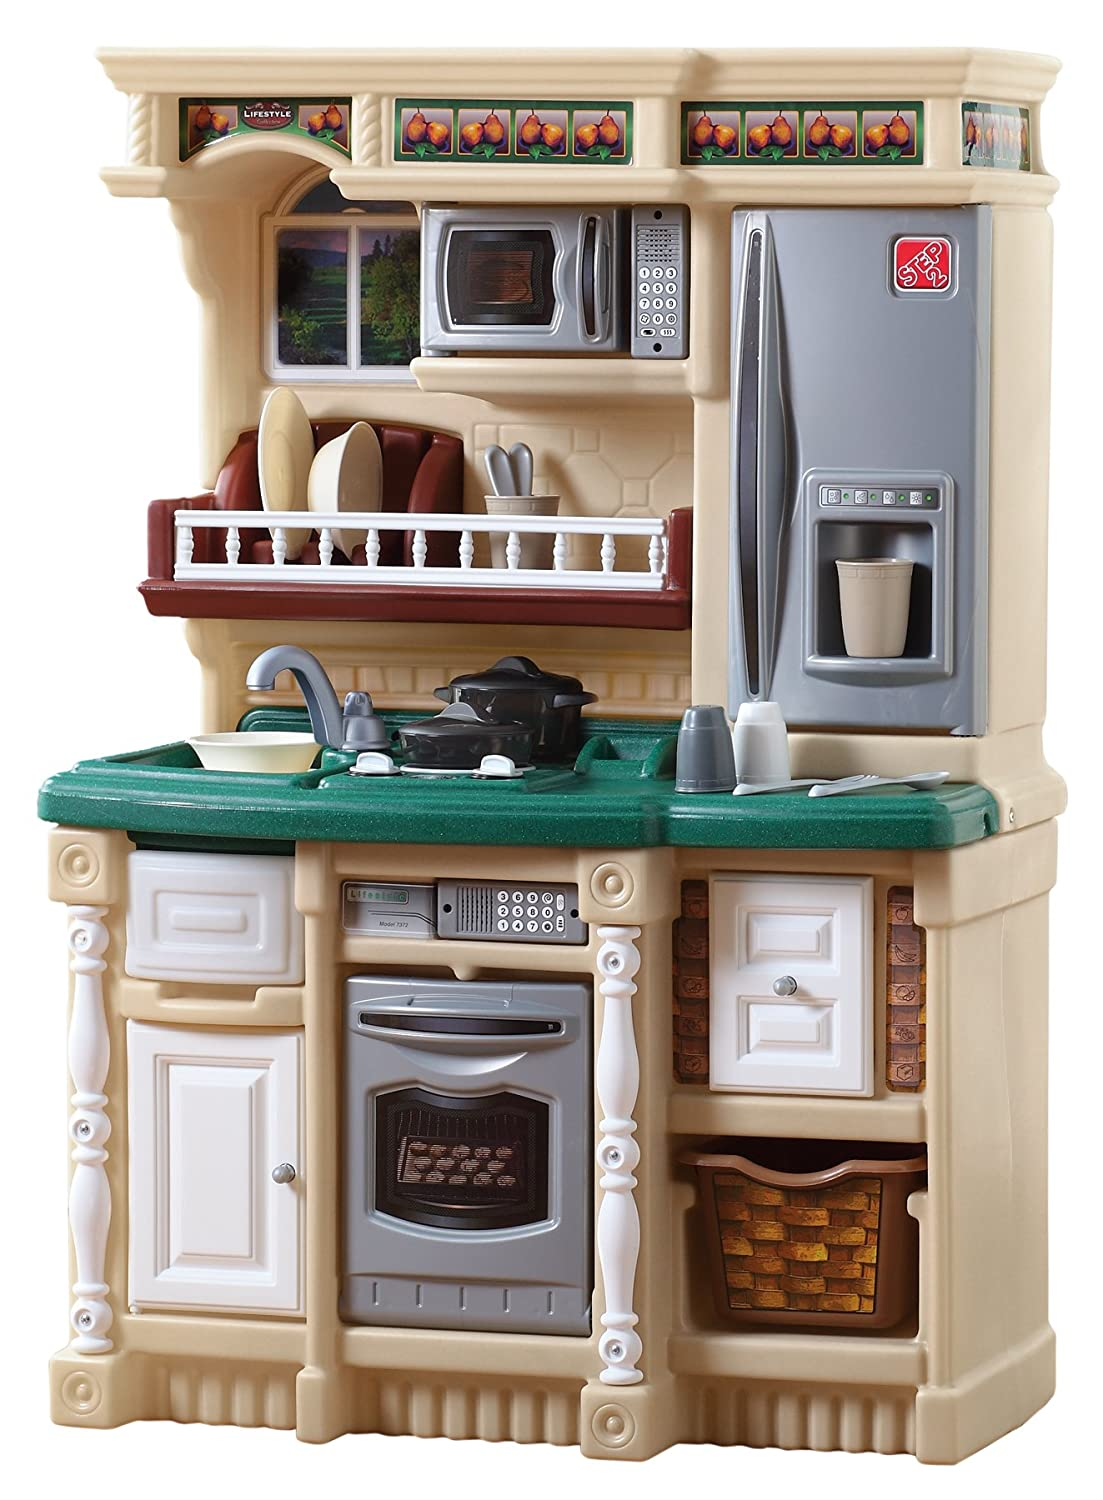 Amazon.com: Step2 LifeStyle Custom Kitchen: Toys & Games